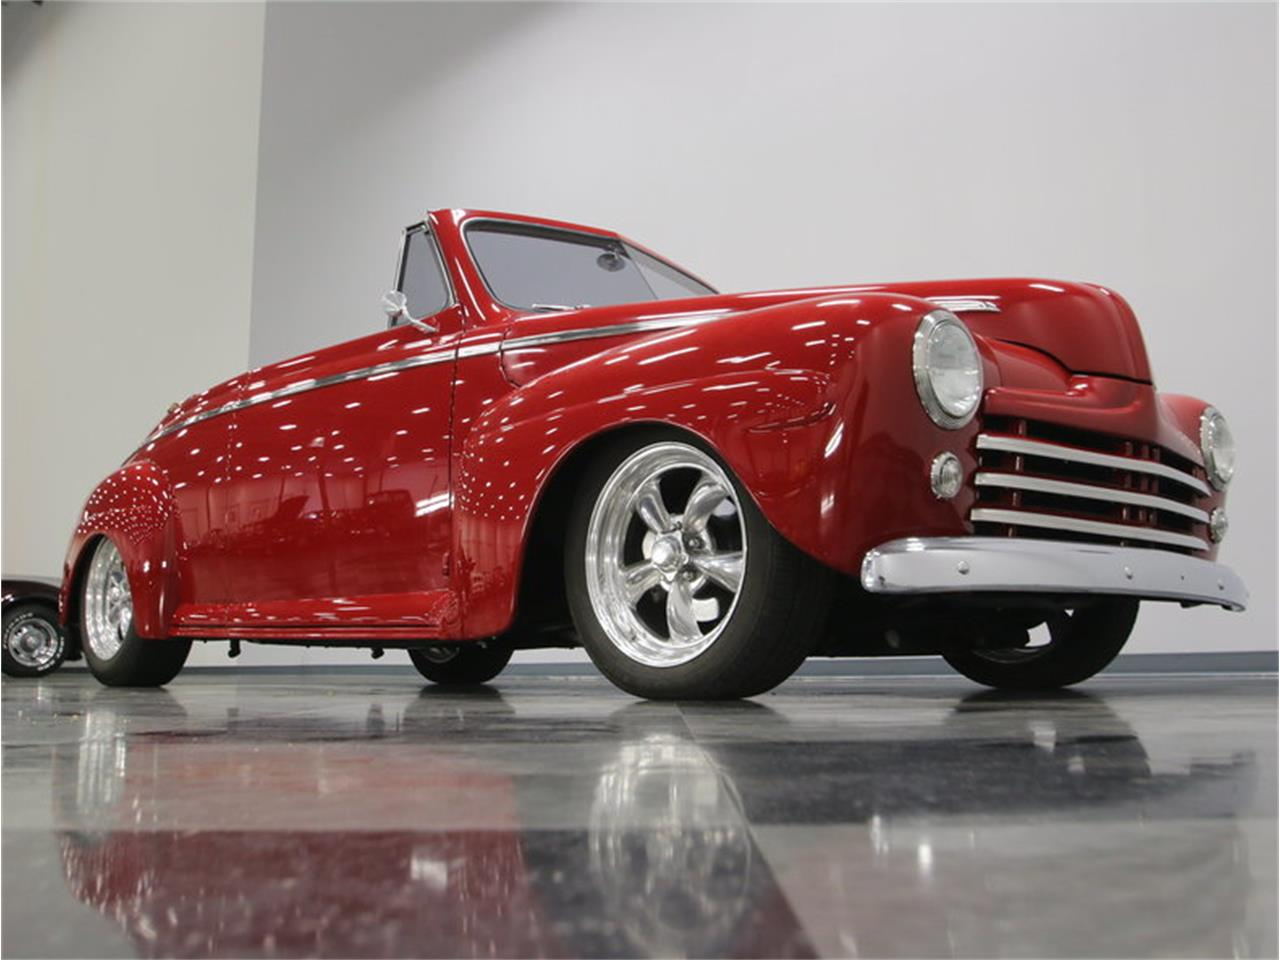 Large Picture of '46 Ford Club Coupe located in Tennessee - $52,995.00 Offered by Streetside Classics - Nashville - LVM3